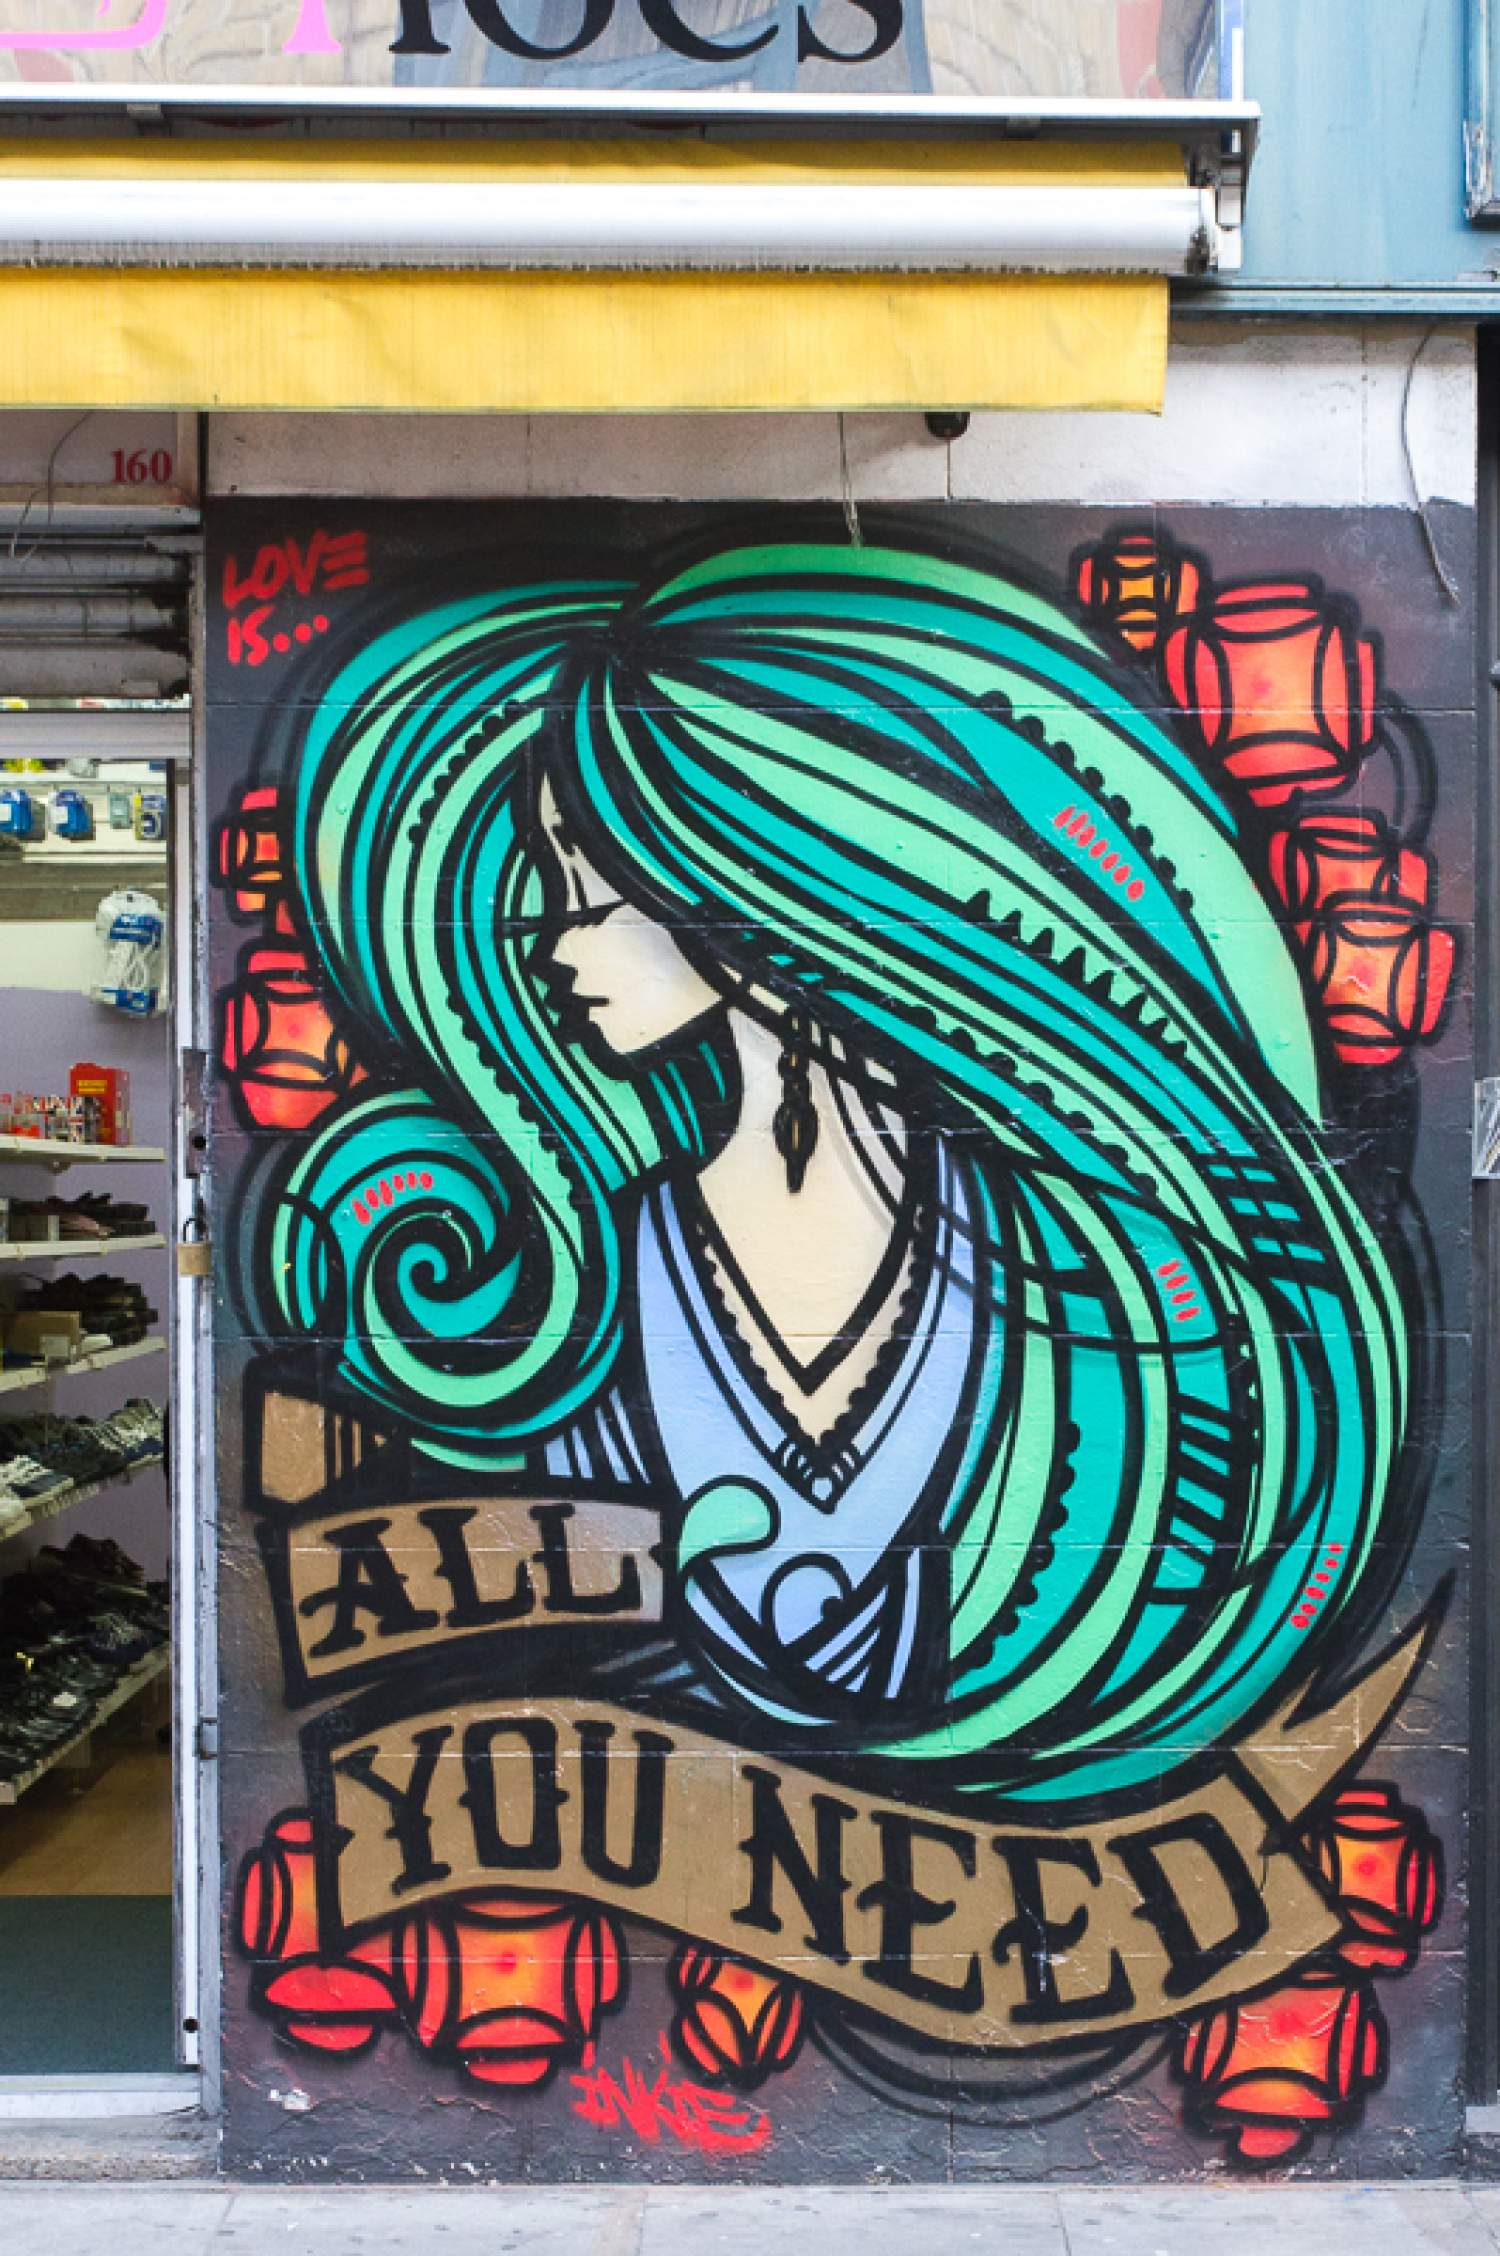 Graffiti d'une fille: All you need, Londres